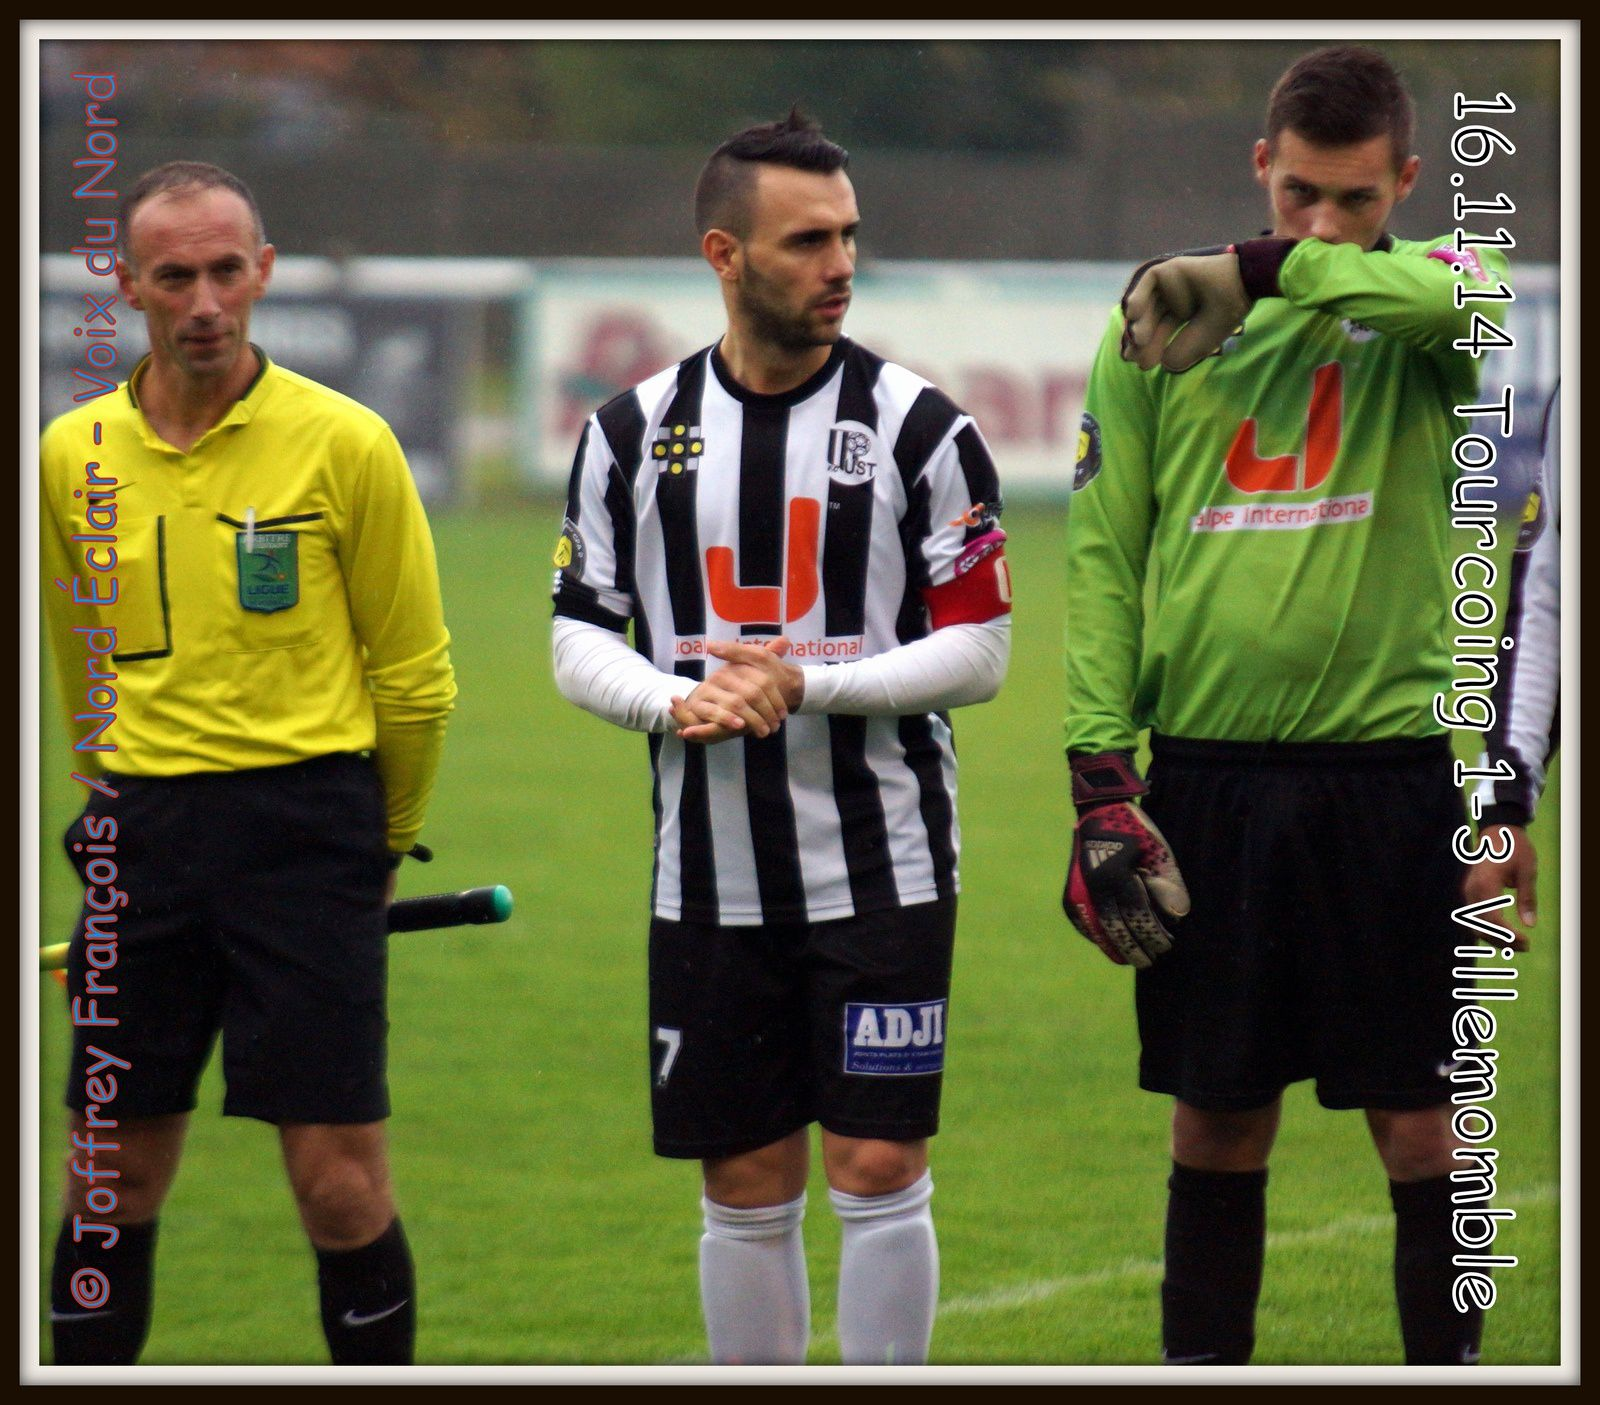 16.11.14 CFA 2 Tourcoing-Villemomble